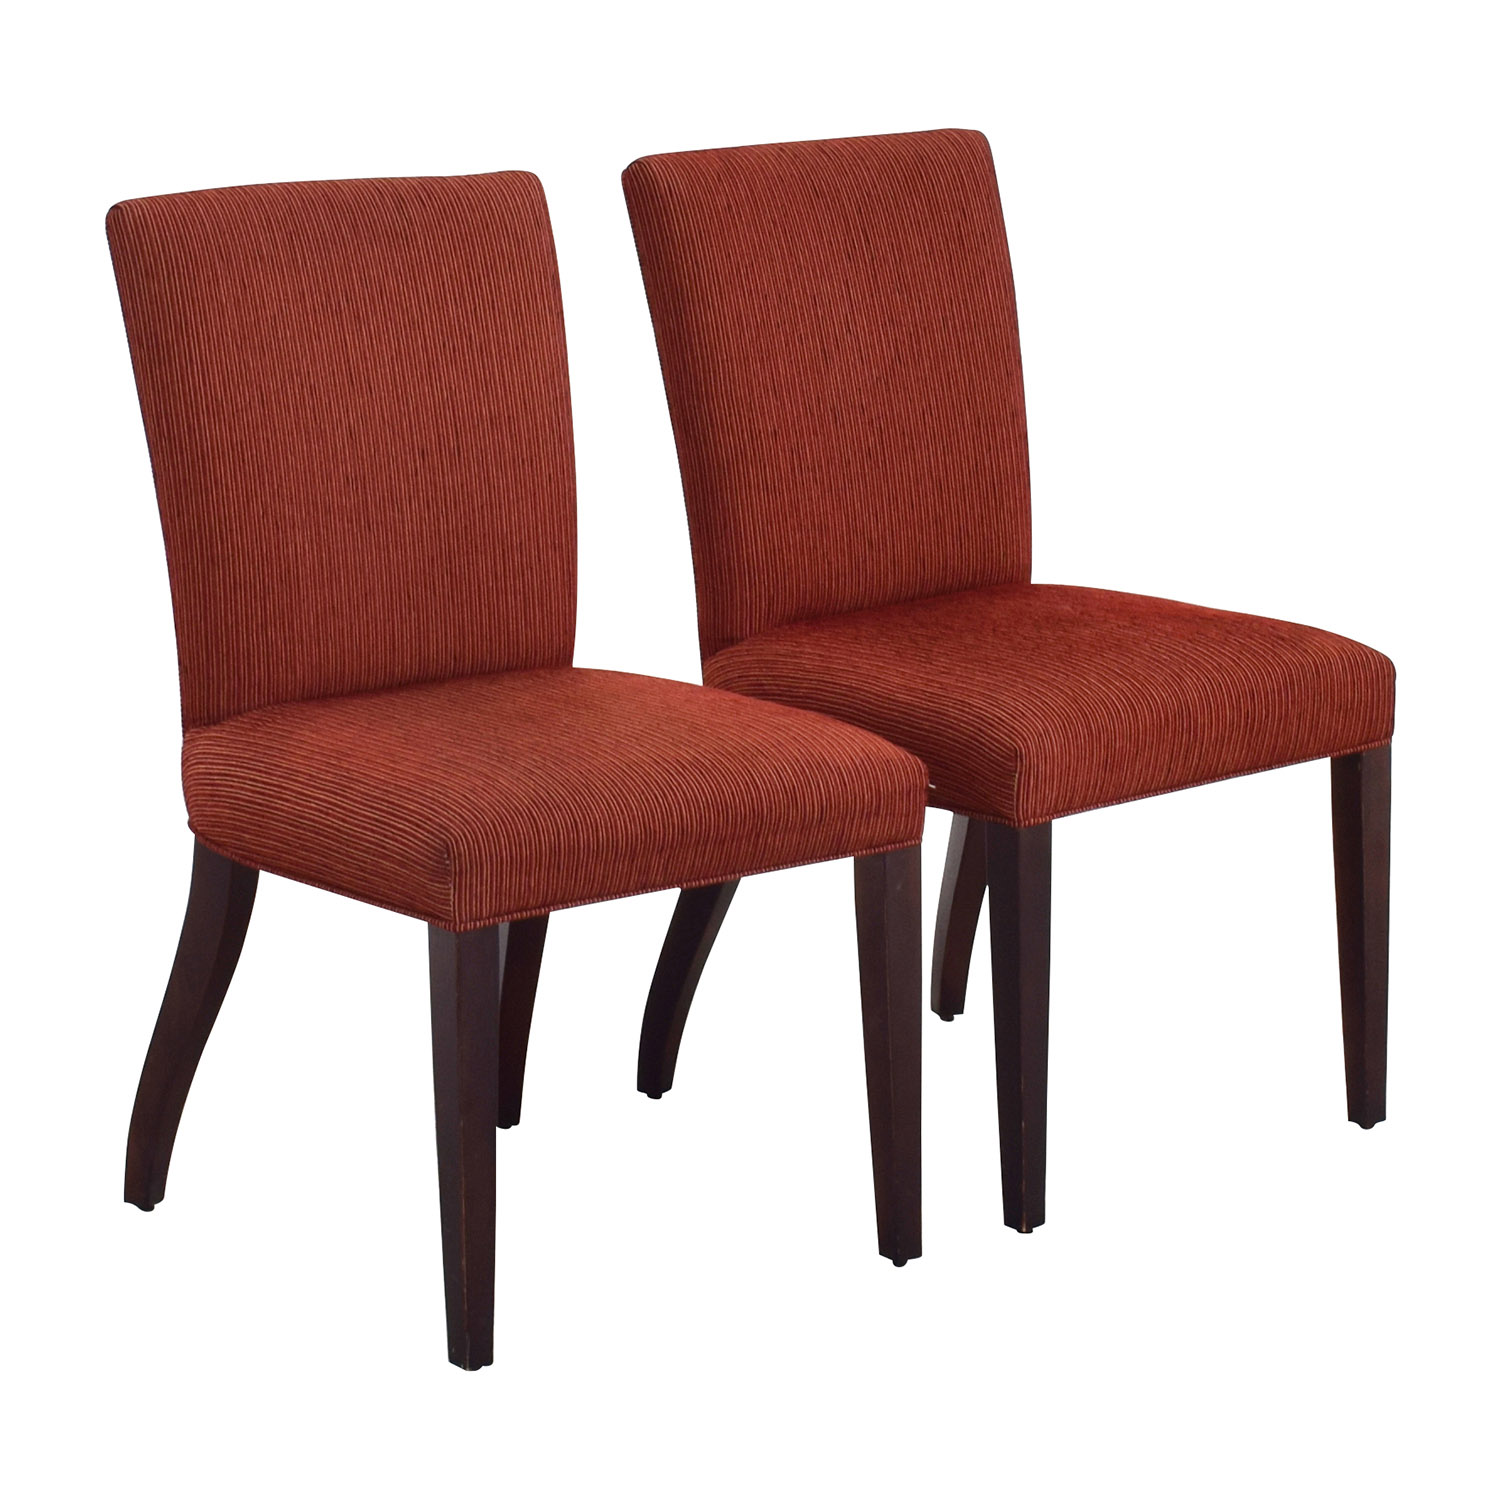 Room Board Anssel Rust Dining Chairs